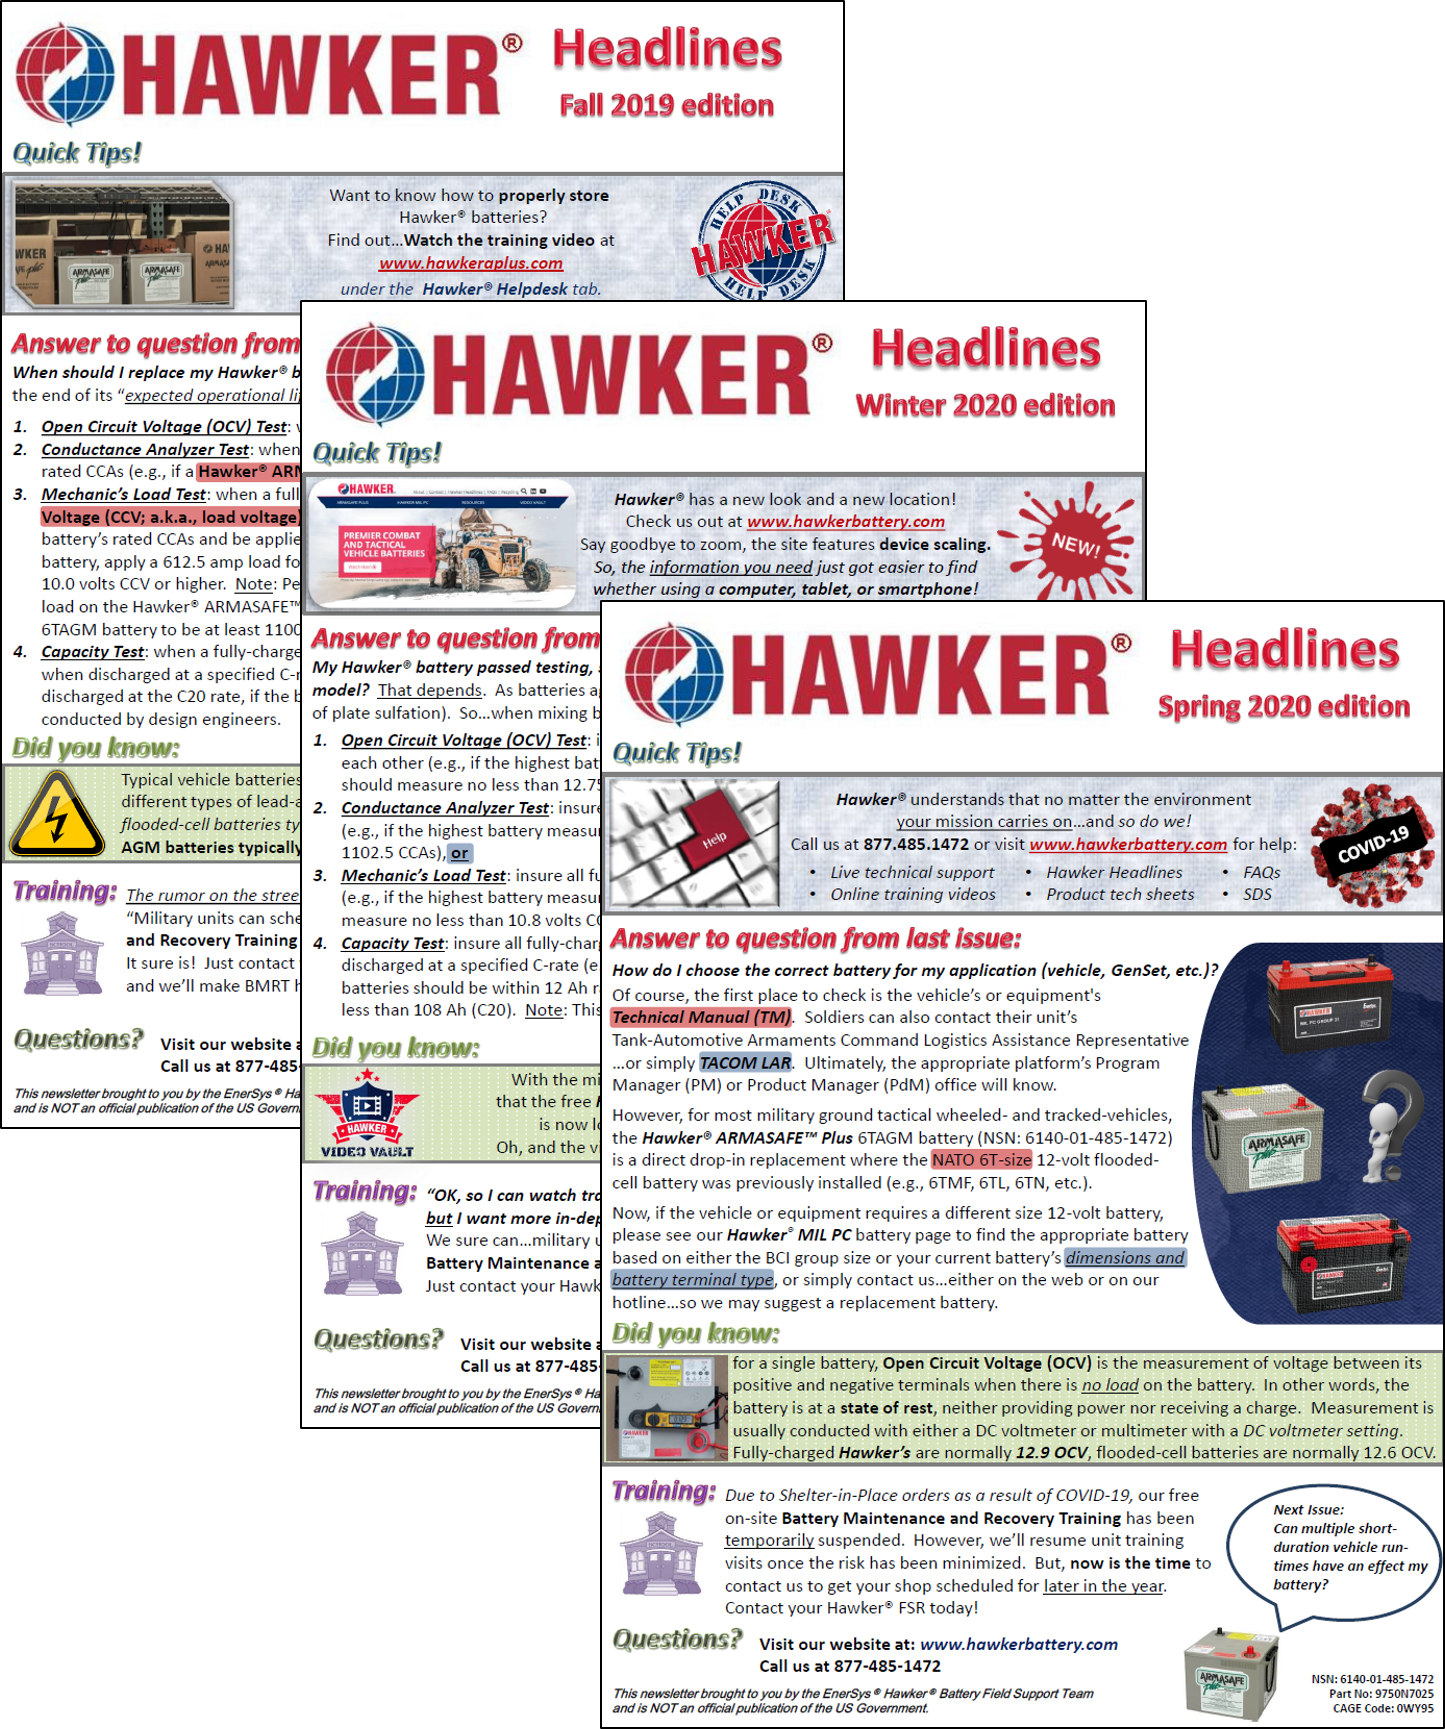 Hawker Headlines